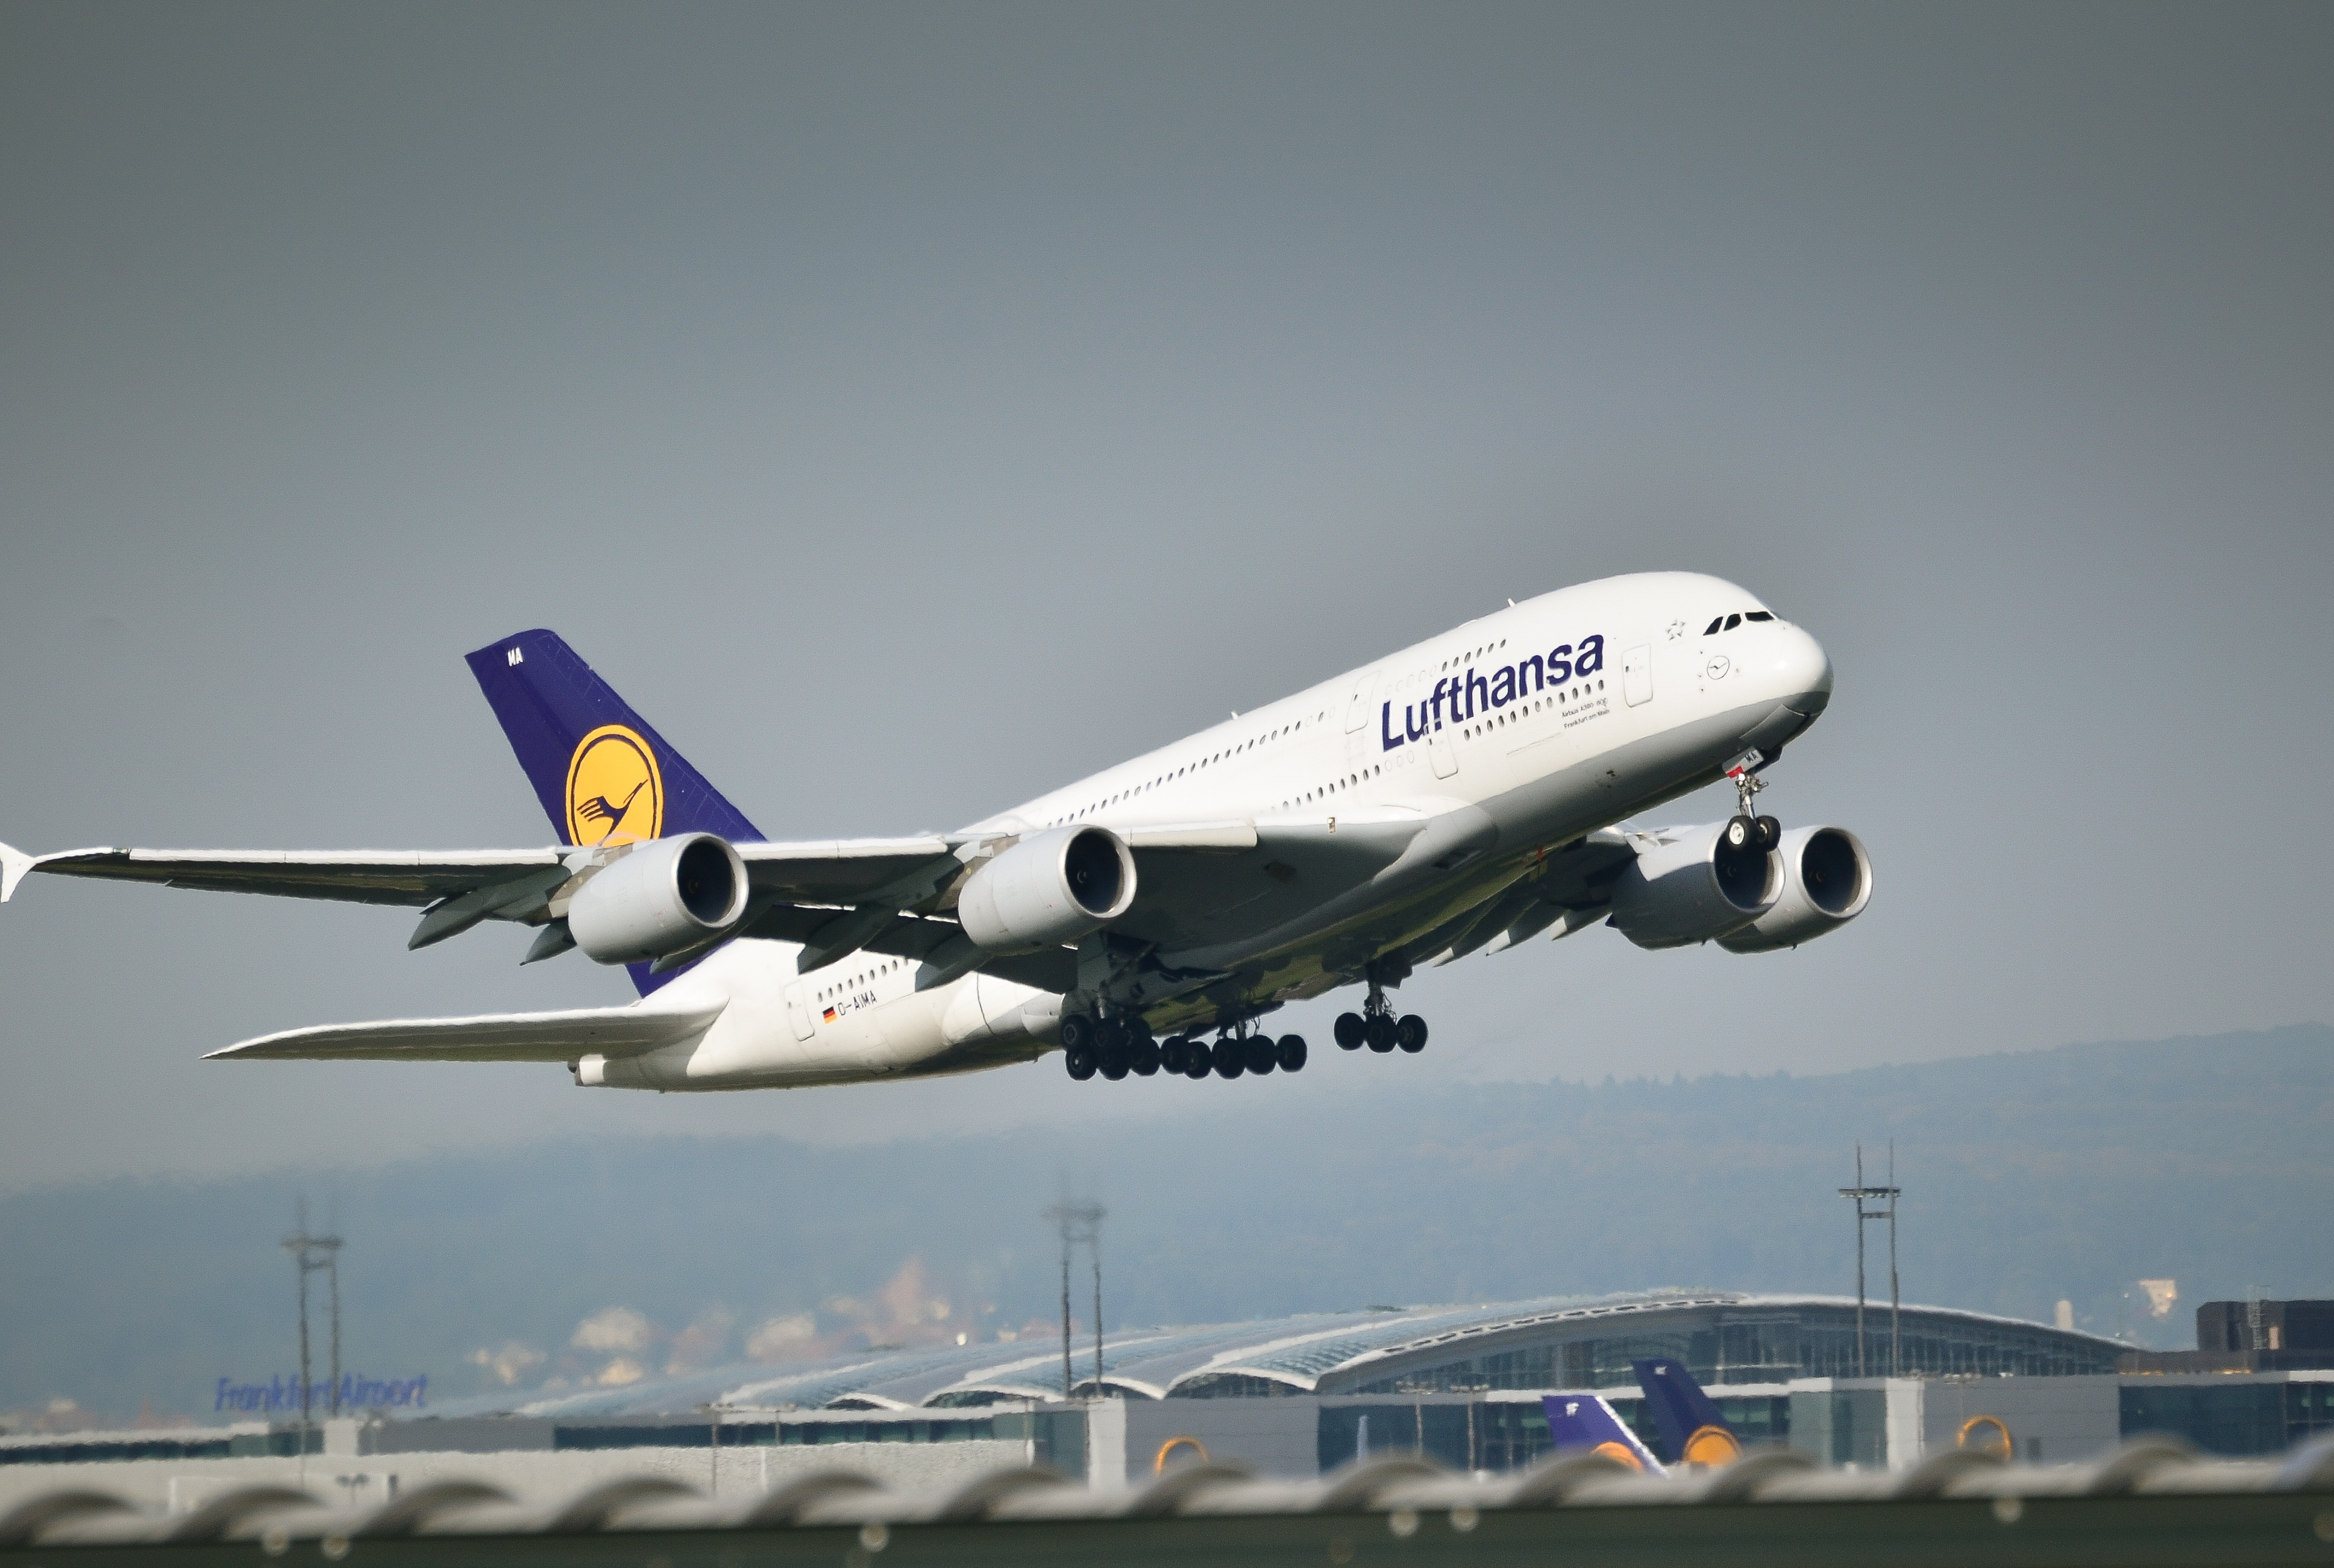 Lufthansa sees increased bookings with Europe easing entry restrictions